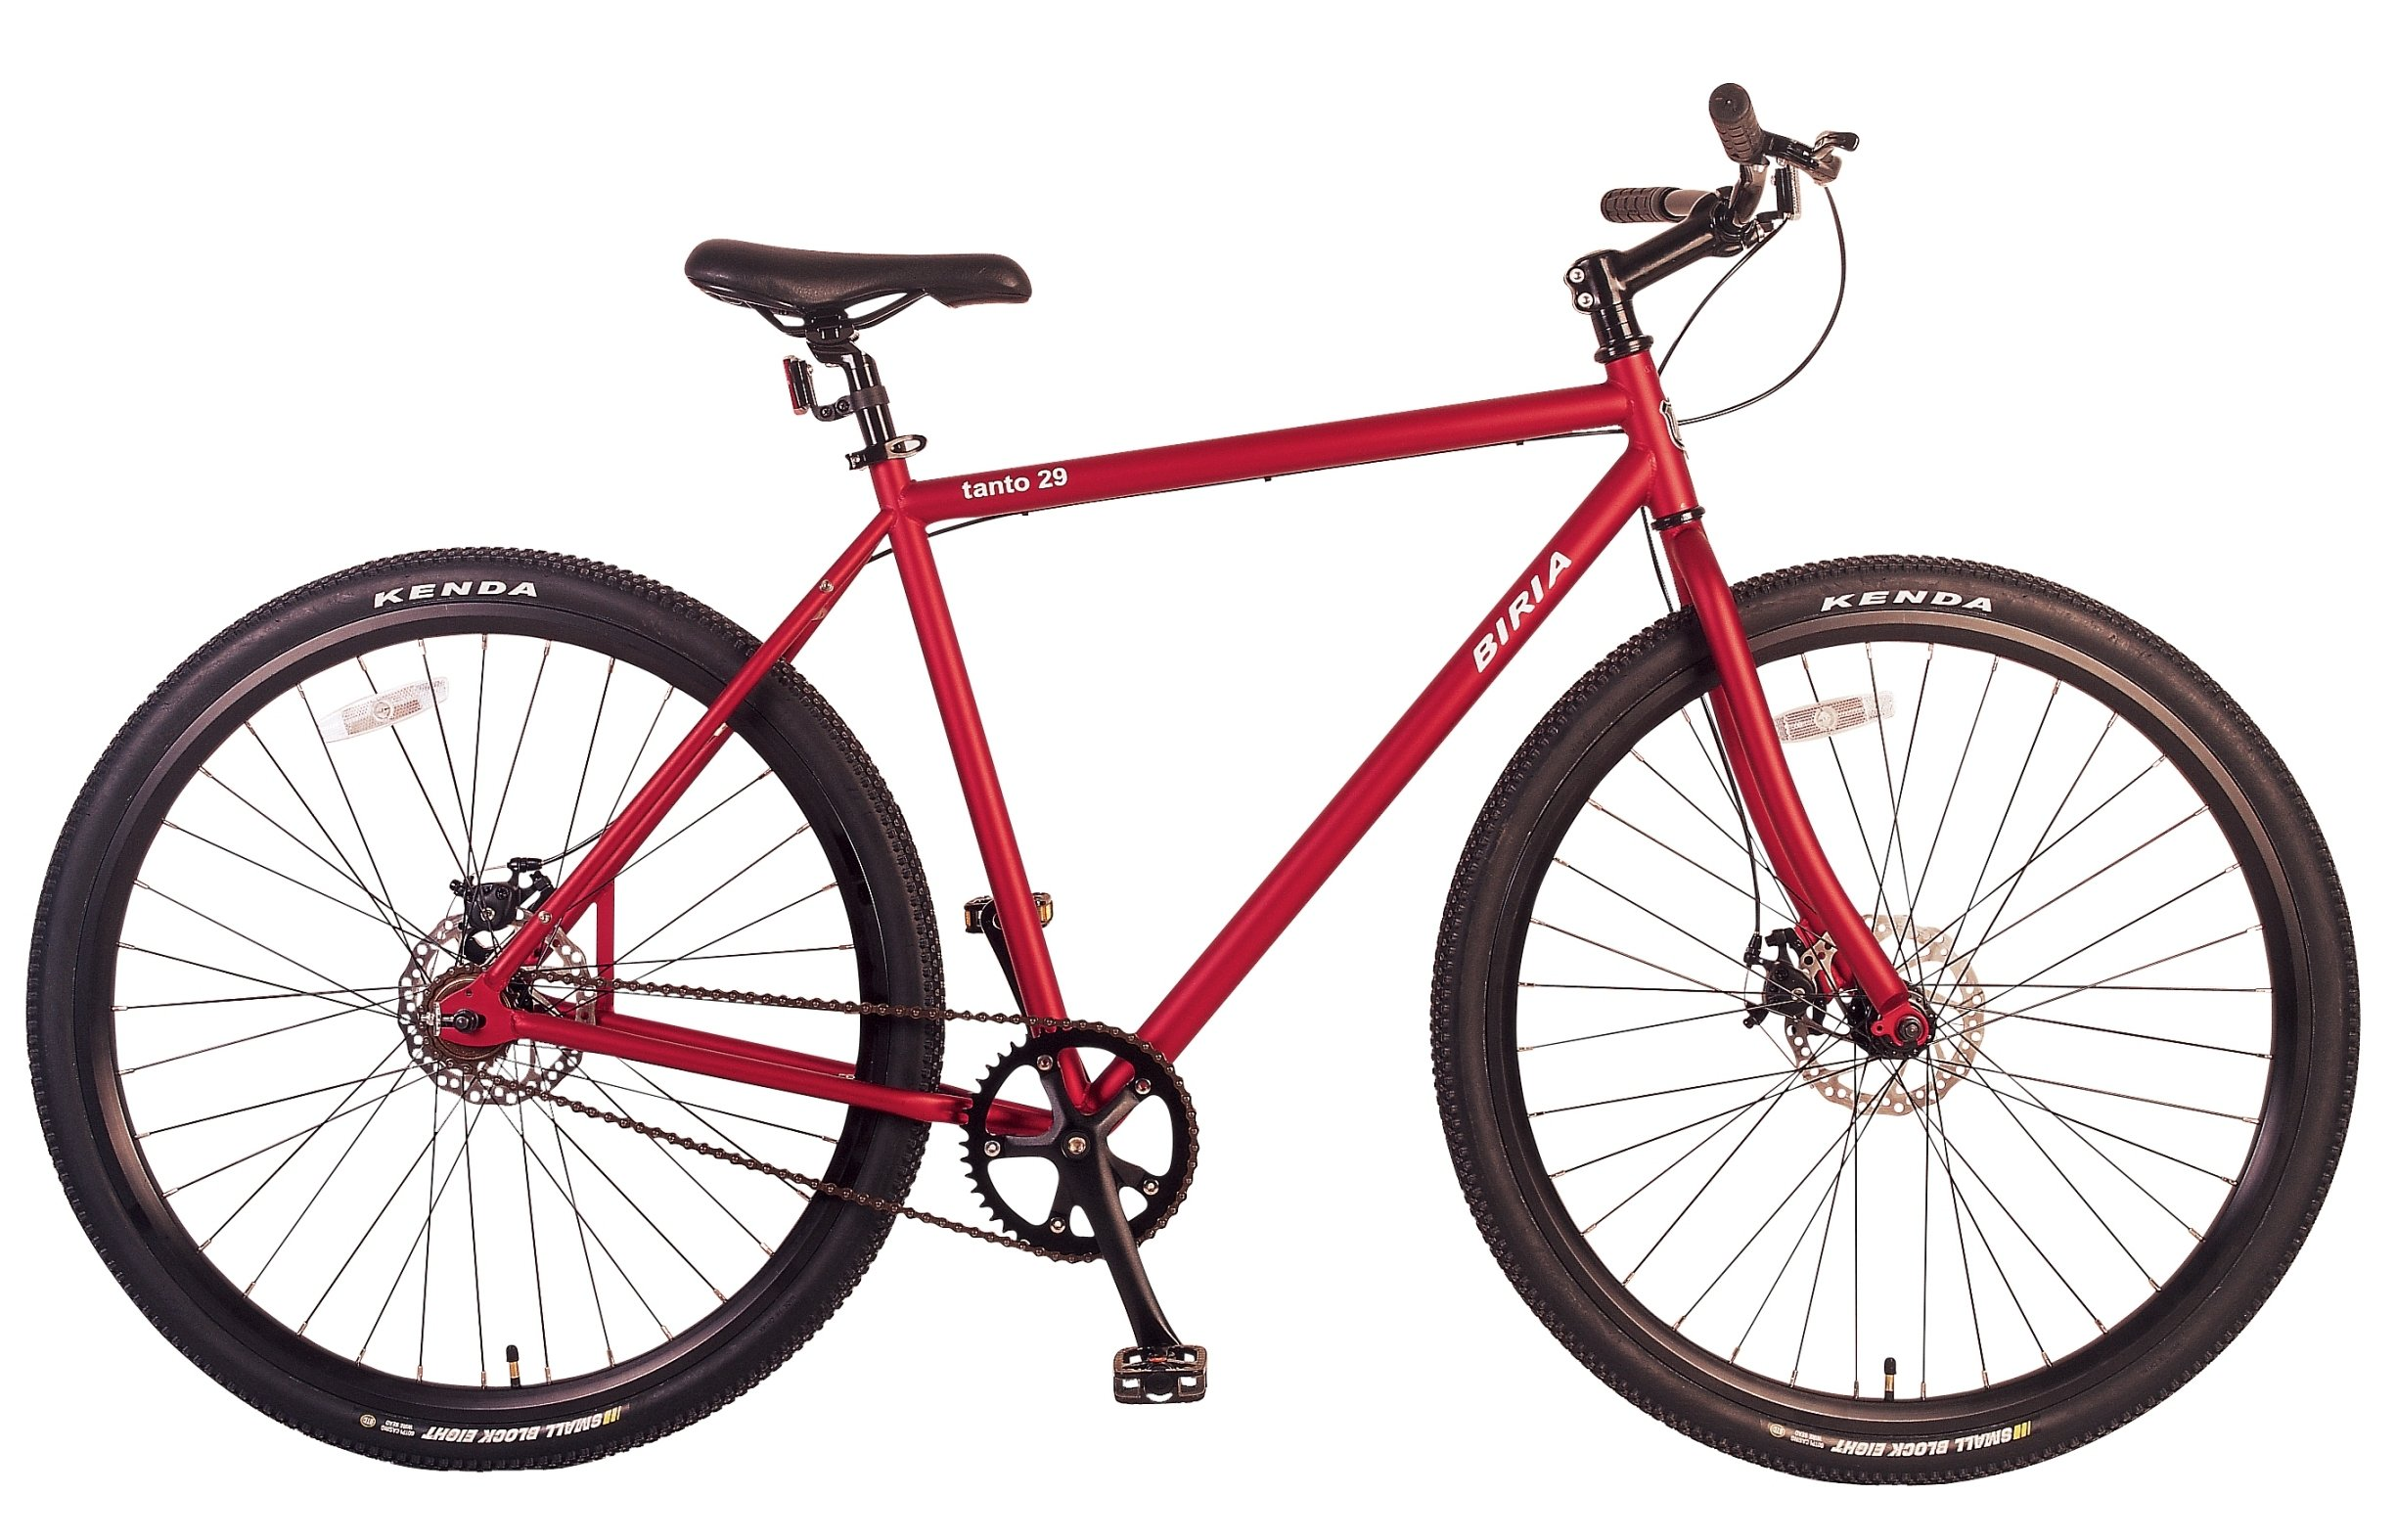 Bicycle single speed 29 inch wheel with Disc Brakes, RED, by Biria